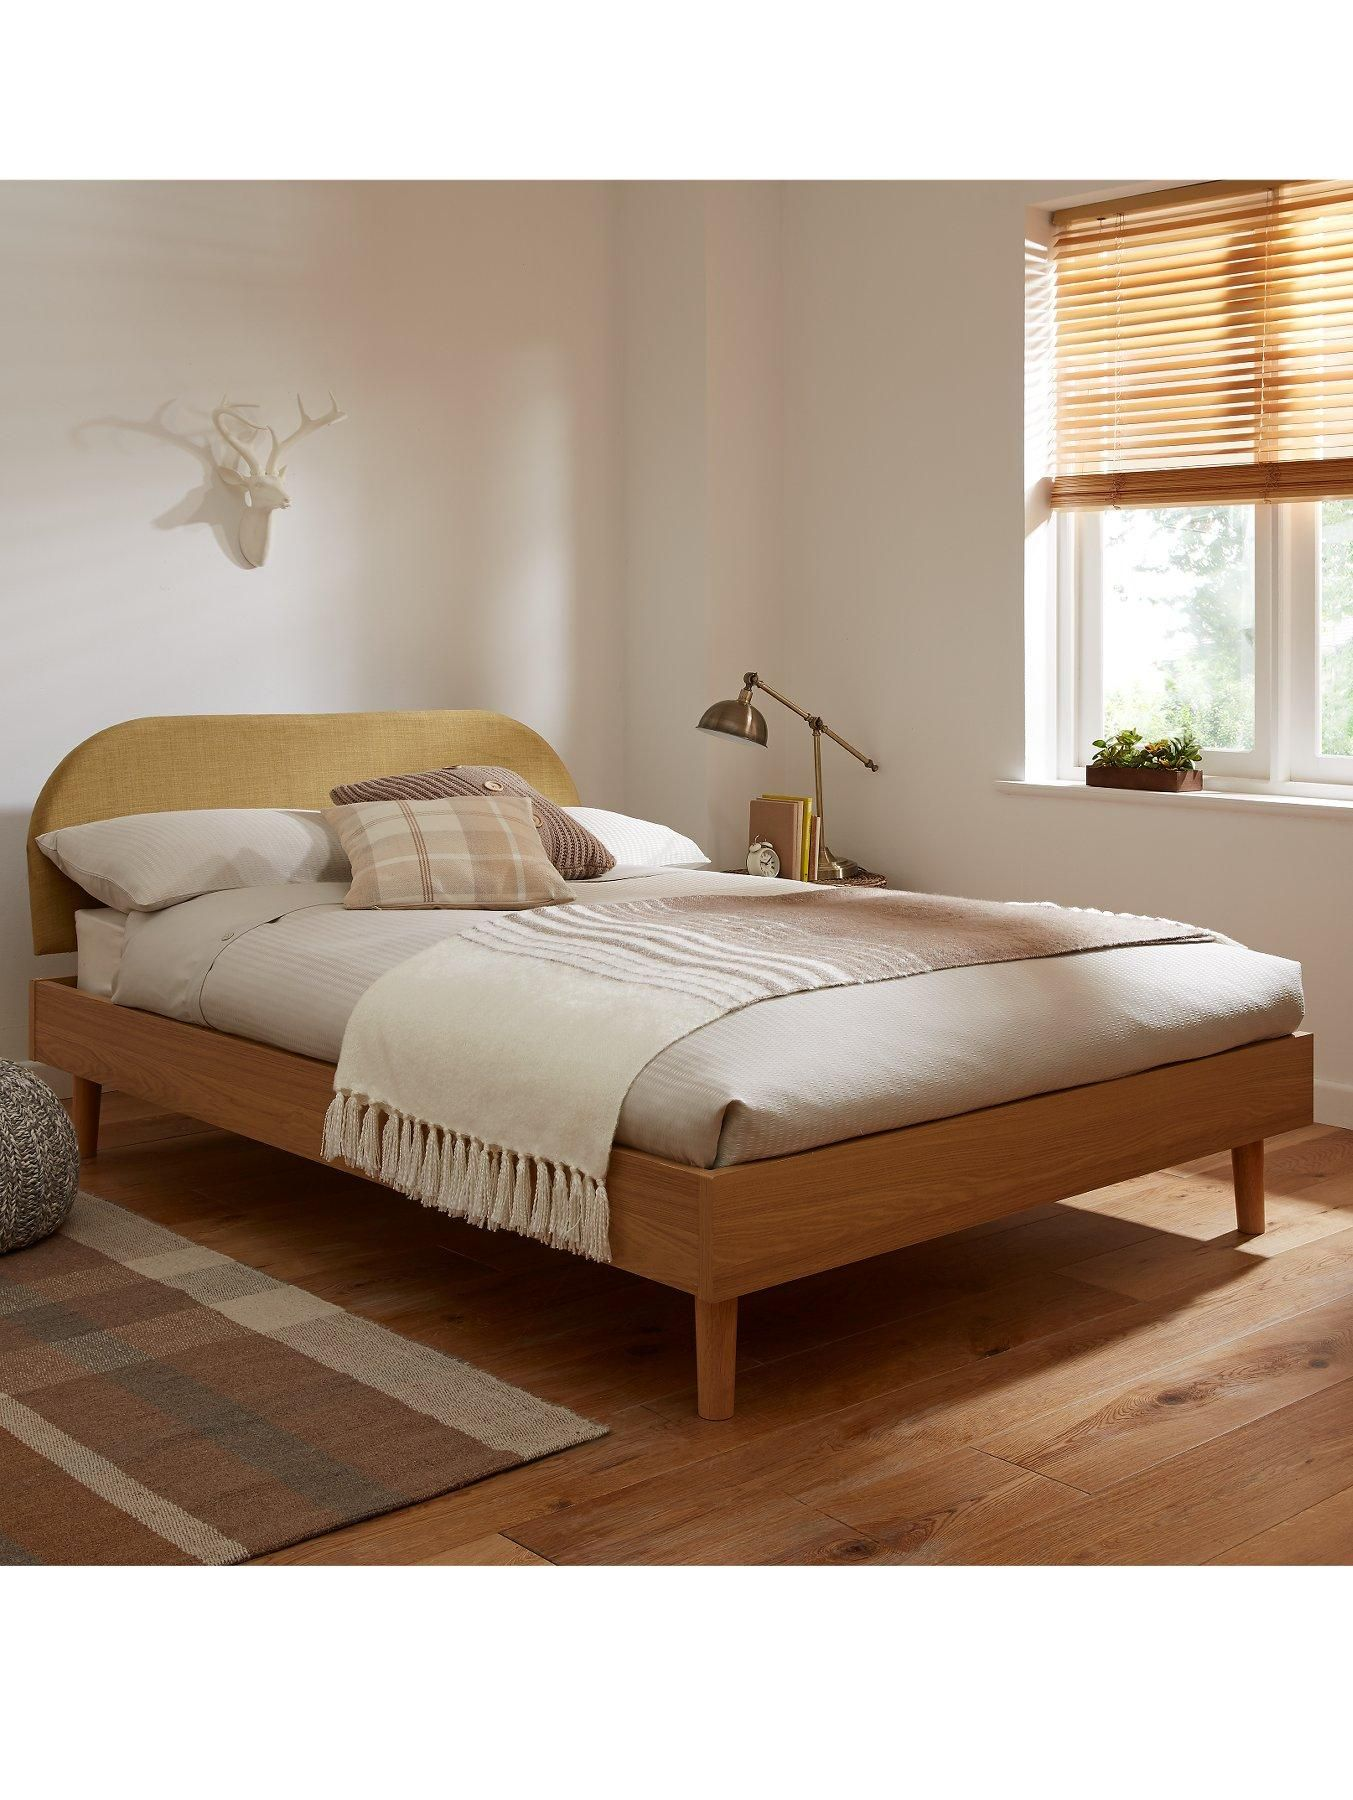 Contemporary Scandinavian Style Wooden Bed Frame With A